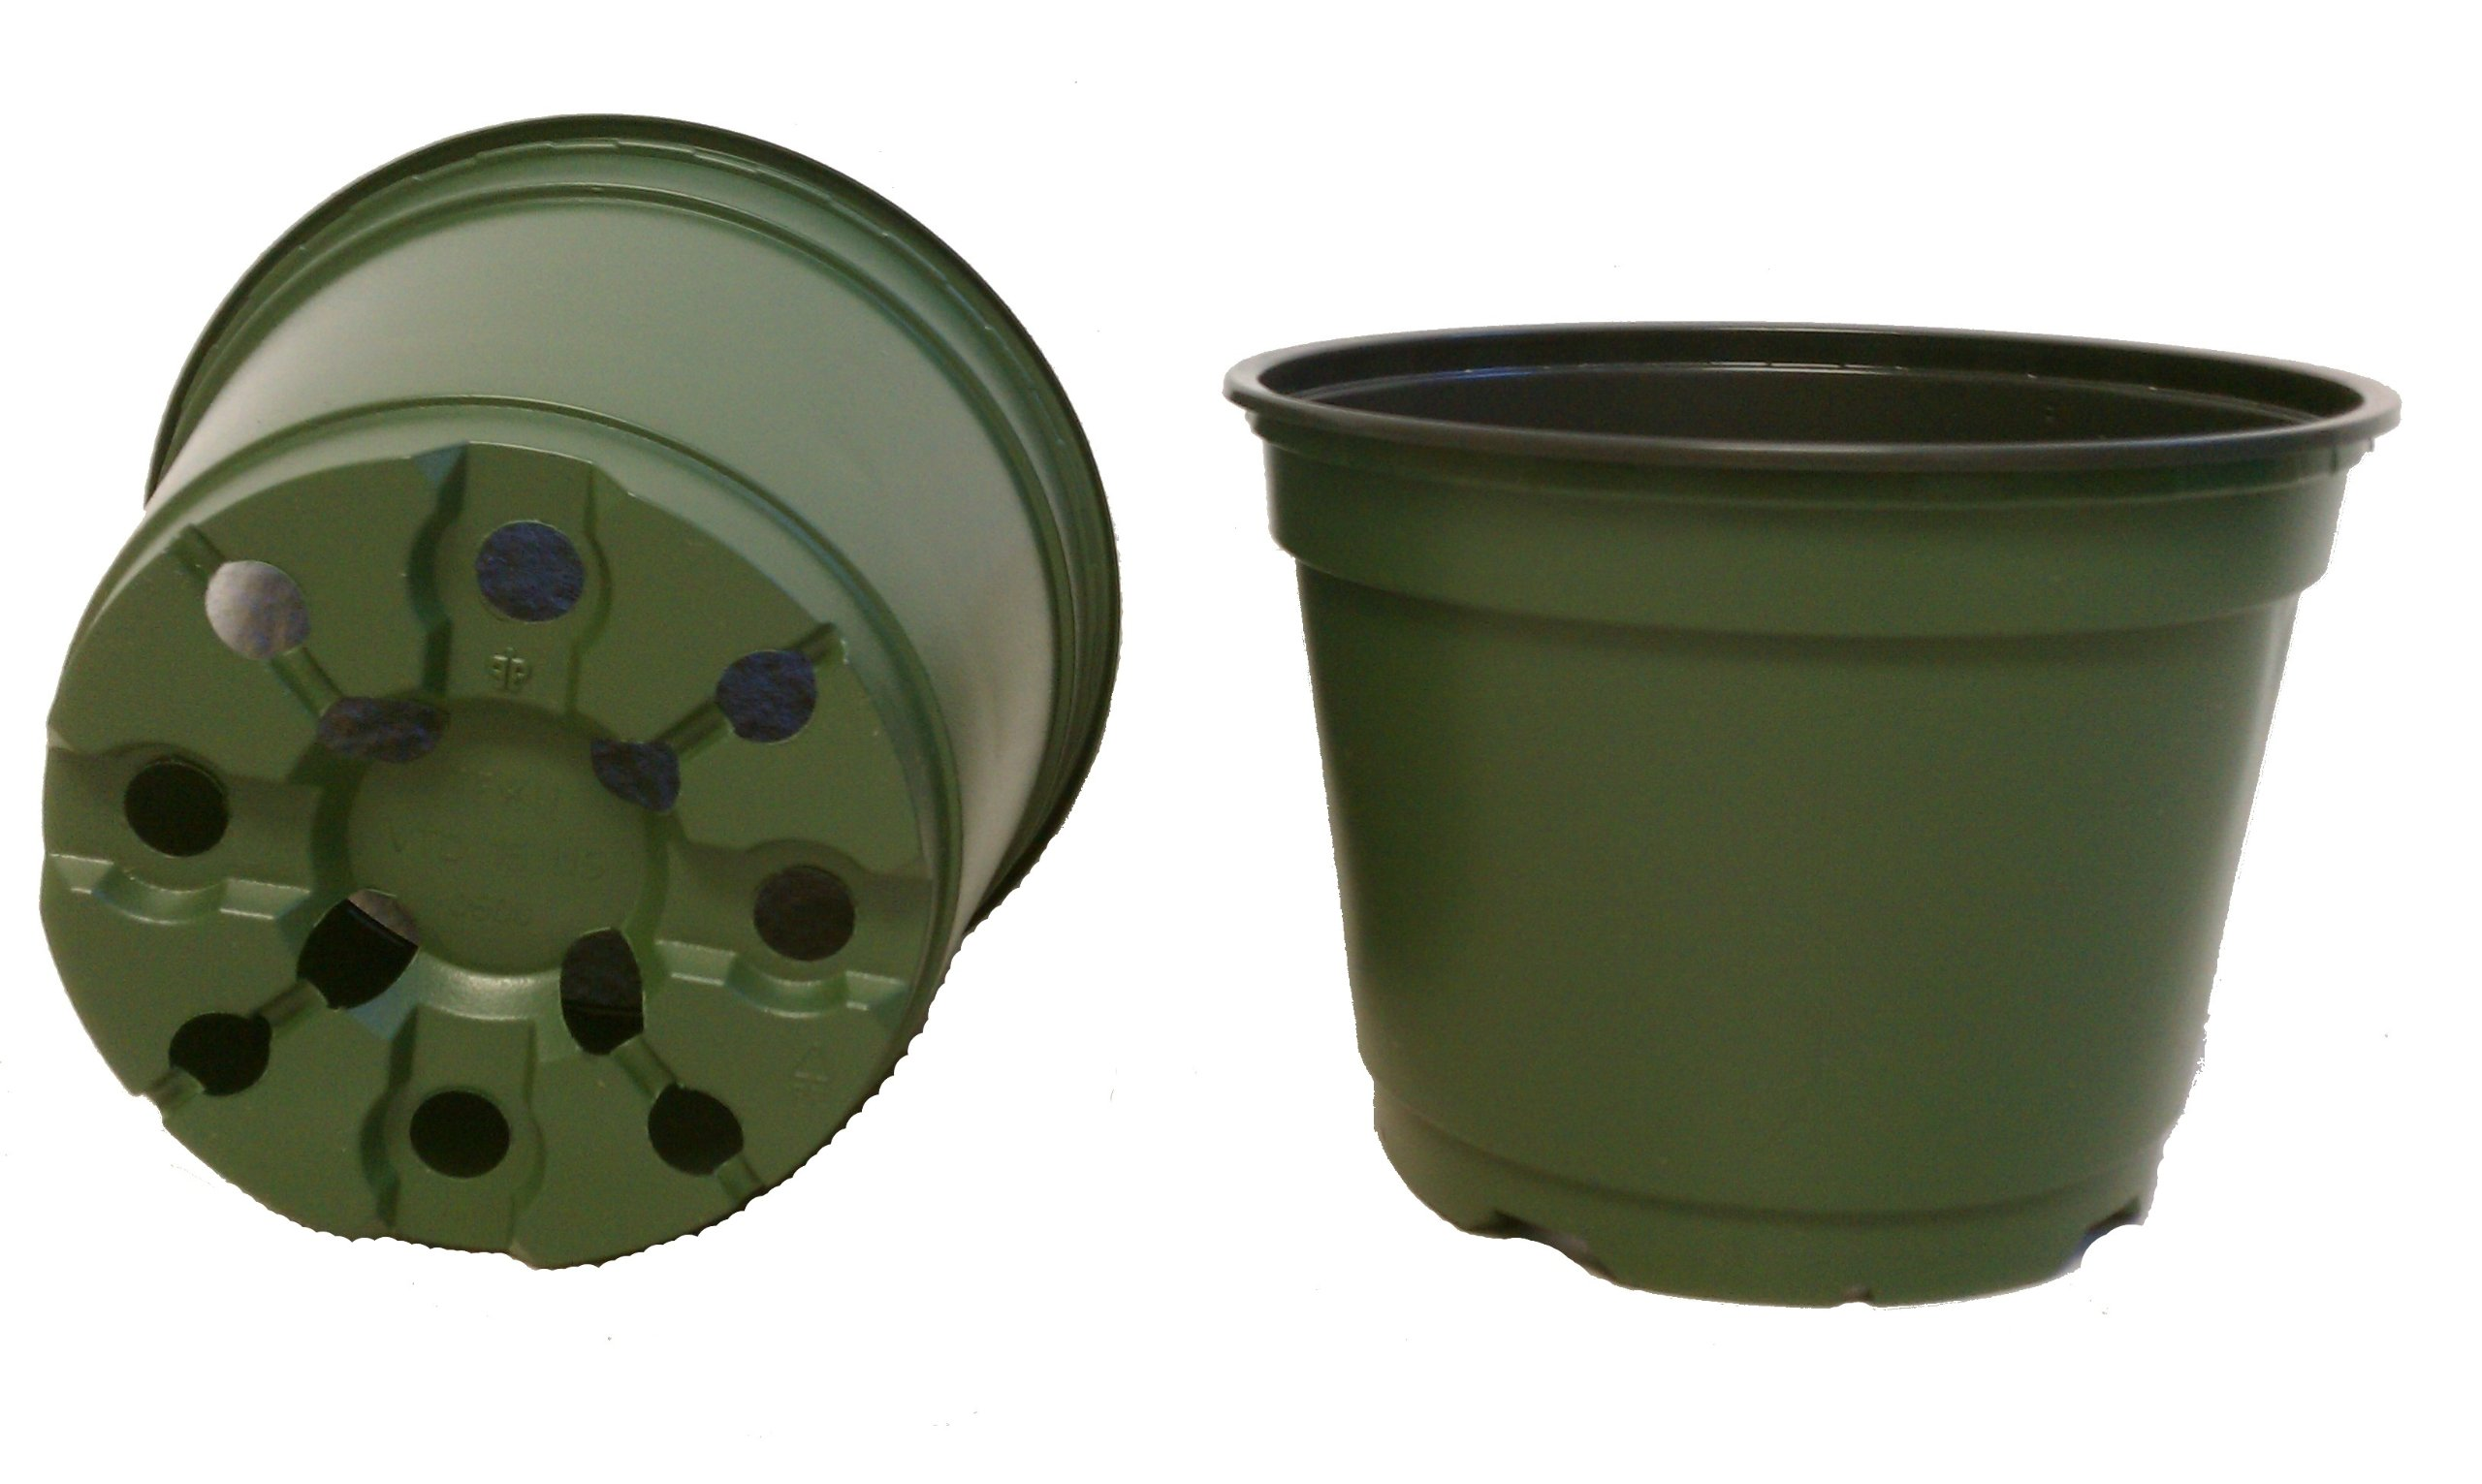 100 NEW 6 Inch TEKU Plastic Nursery Pots - Azalea Style ~ Pots ARE 6 Inch Round At the Top and 4.25 Inch Deep. by Teku